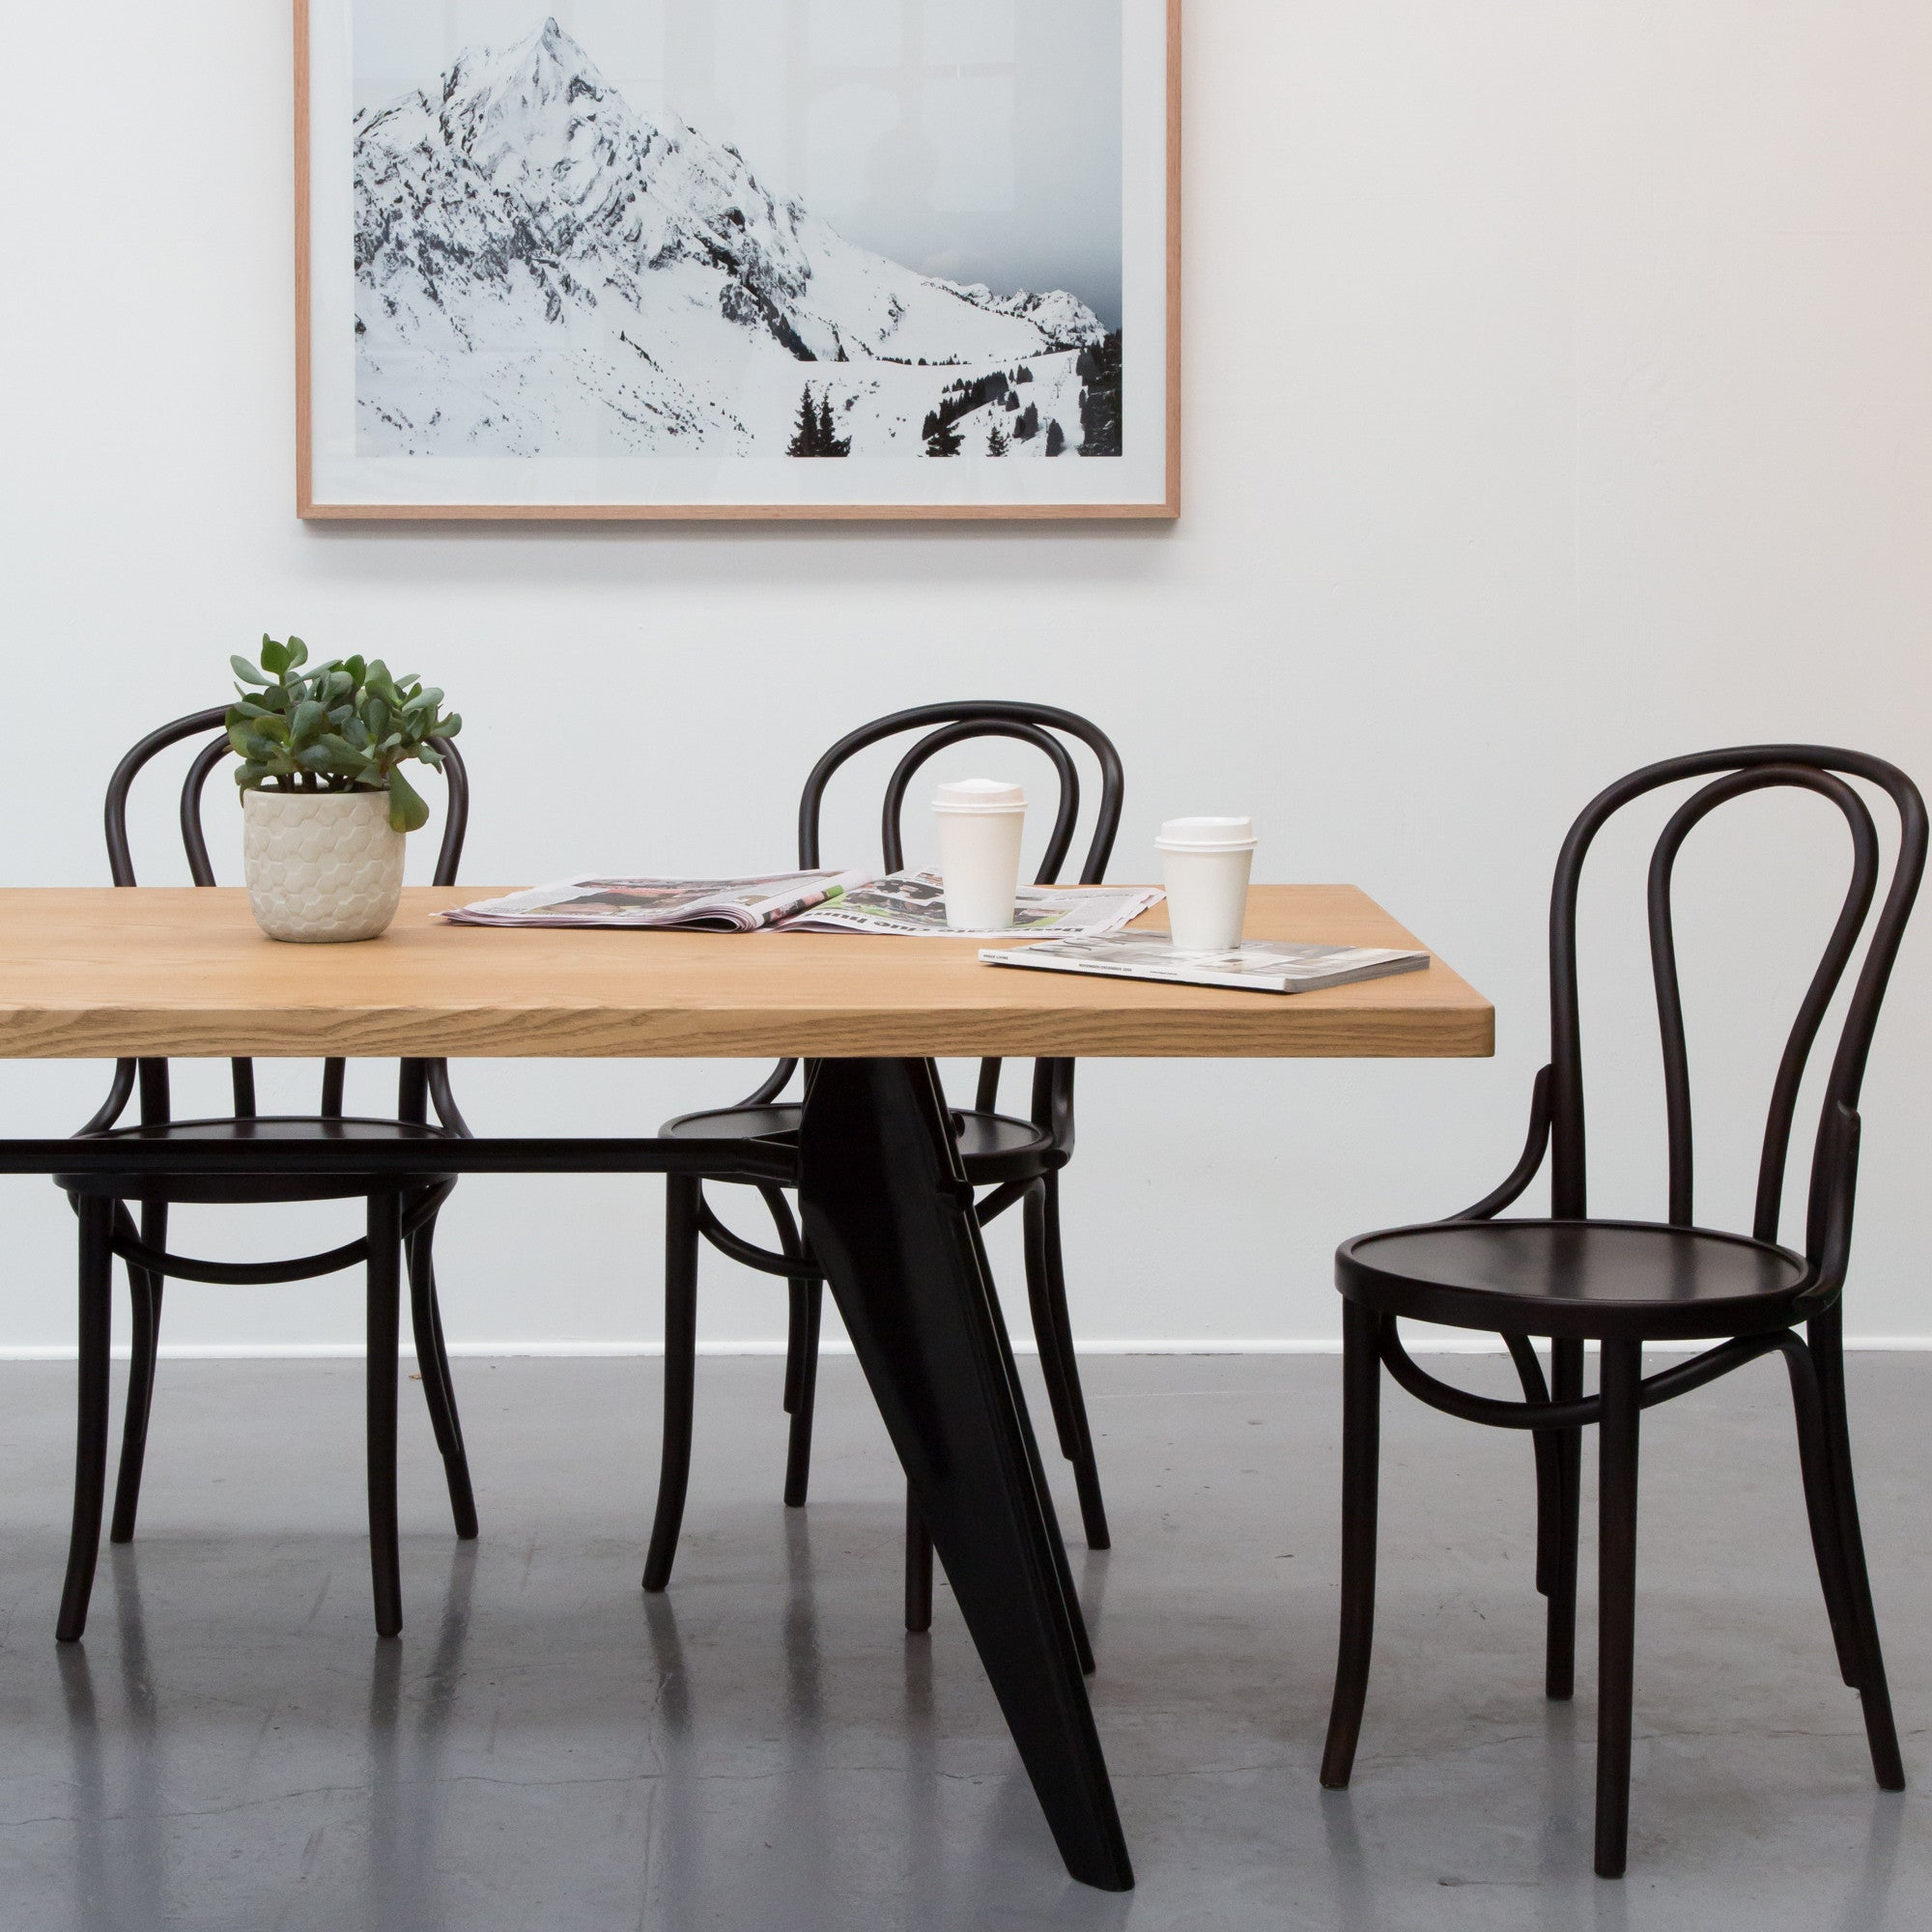 Thonet bentwood no 18 chair replica eat furniture for Designer furniture replica melbourne